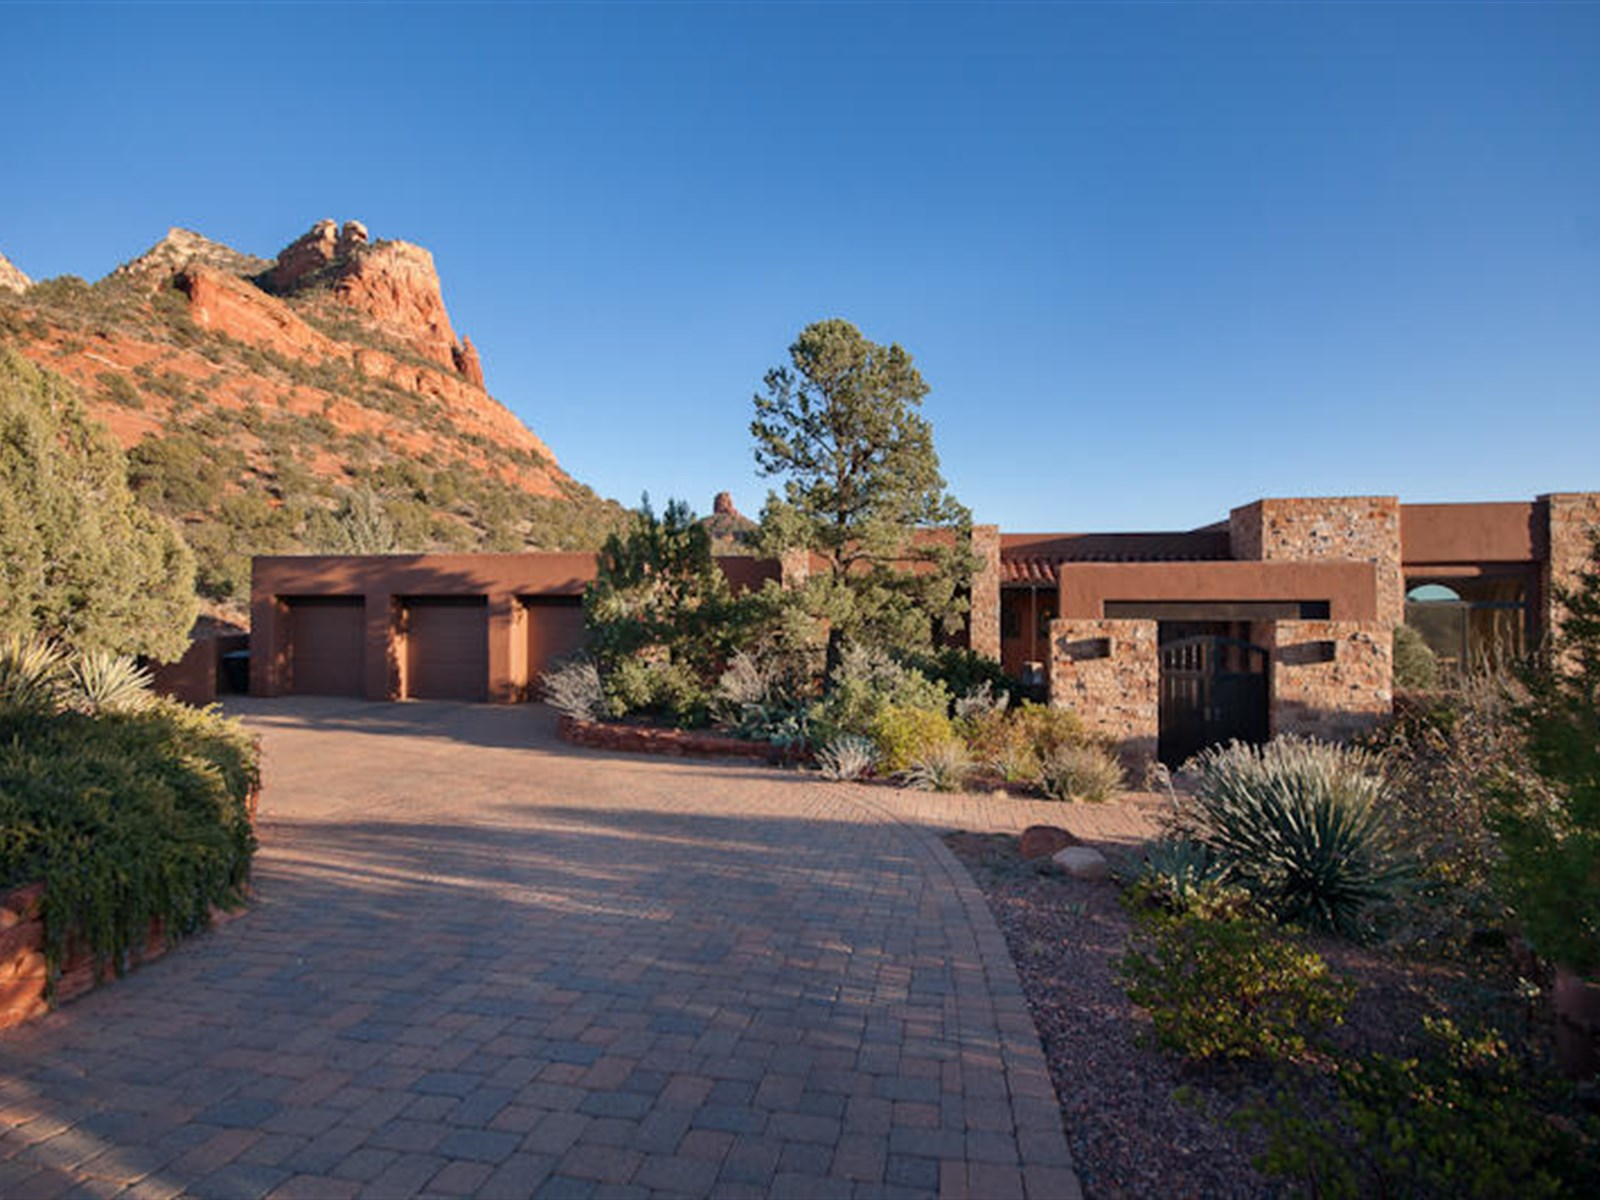 Single Family Home for Sale at Exquisite Southwestern Contemporary 20 Garnet Hill DR Sedona, Arizona, 86336 United States